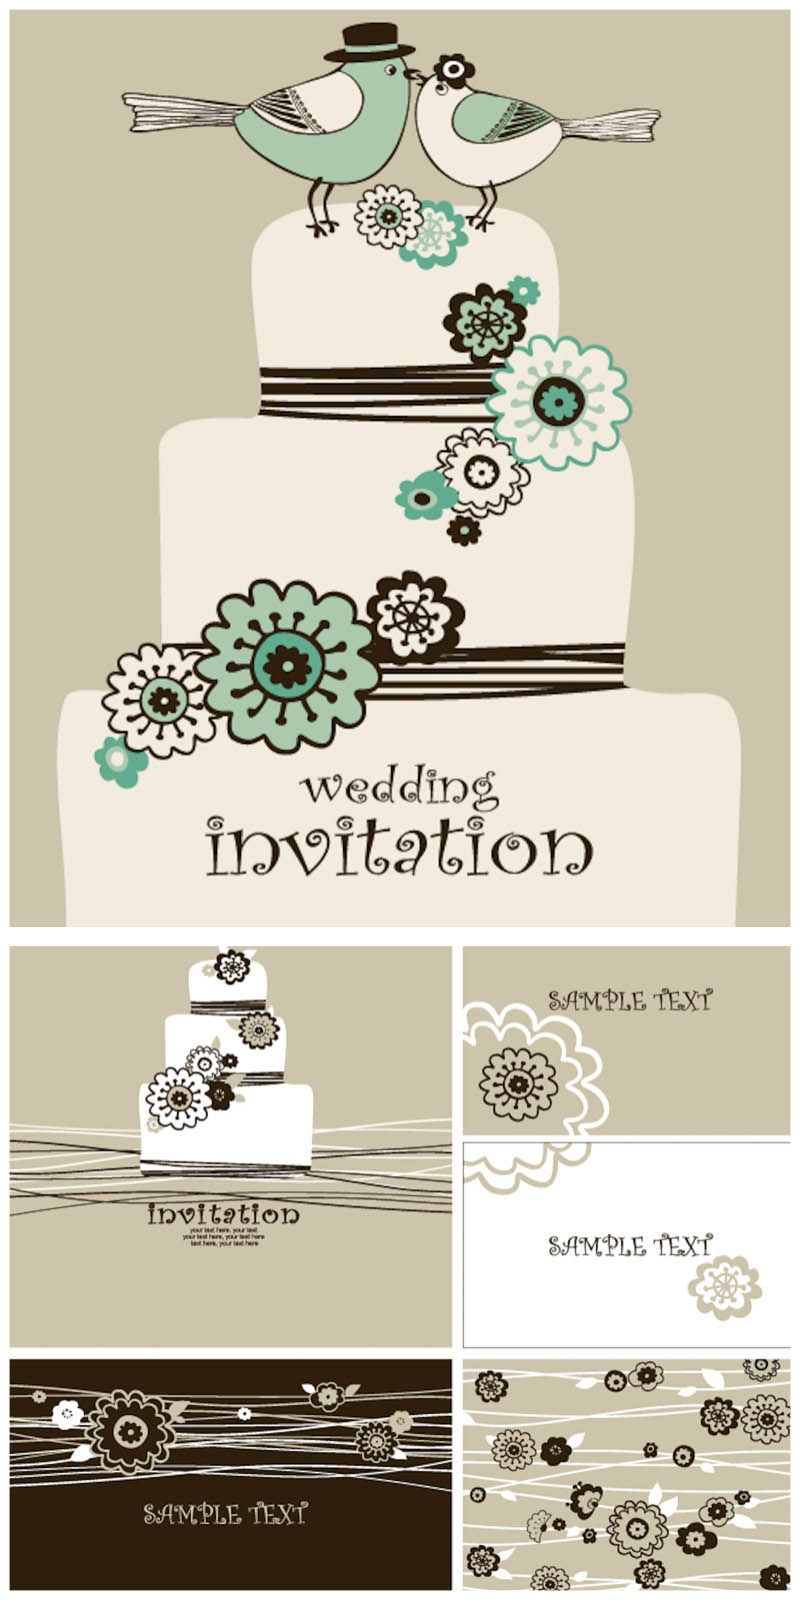 Decorative wedding invitation card templates vector free vector set of vector minimalist style wedding invitation card templates with decorative illustrations of wedding cake and some flowers for your designs stopboris Images